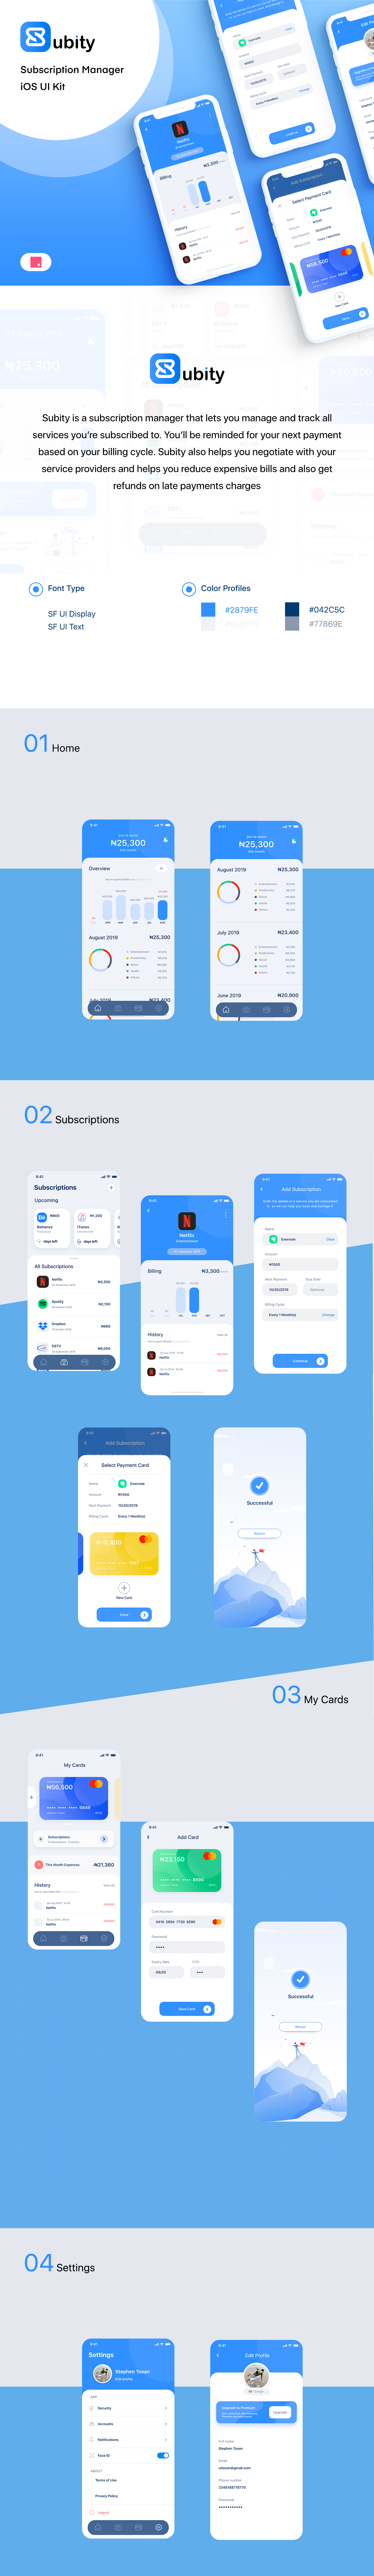 Subity UI Kit - Subscription Manager - Subity is a subscription manager app designed with InVision Studio to help track and manage your subscriptions.